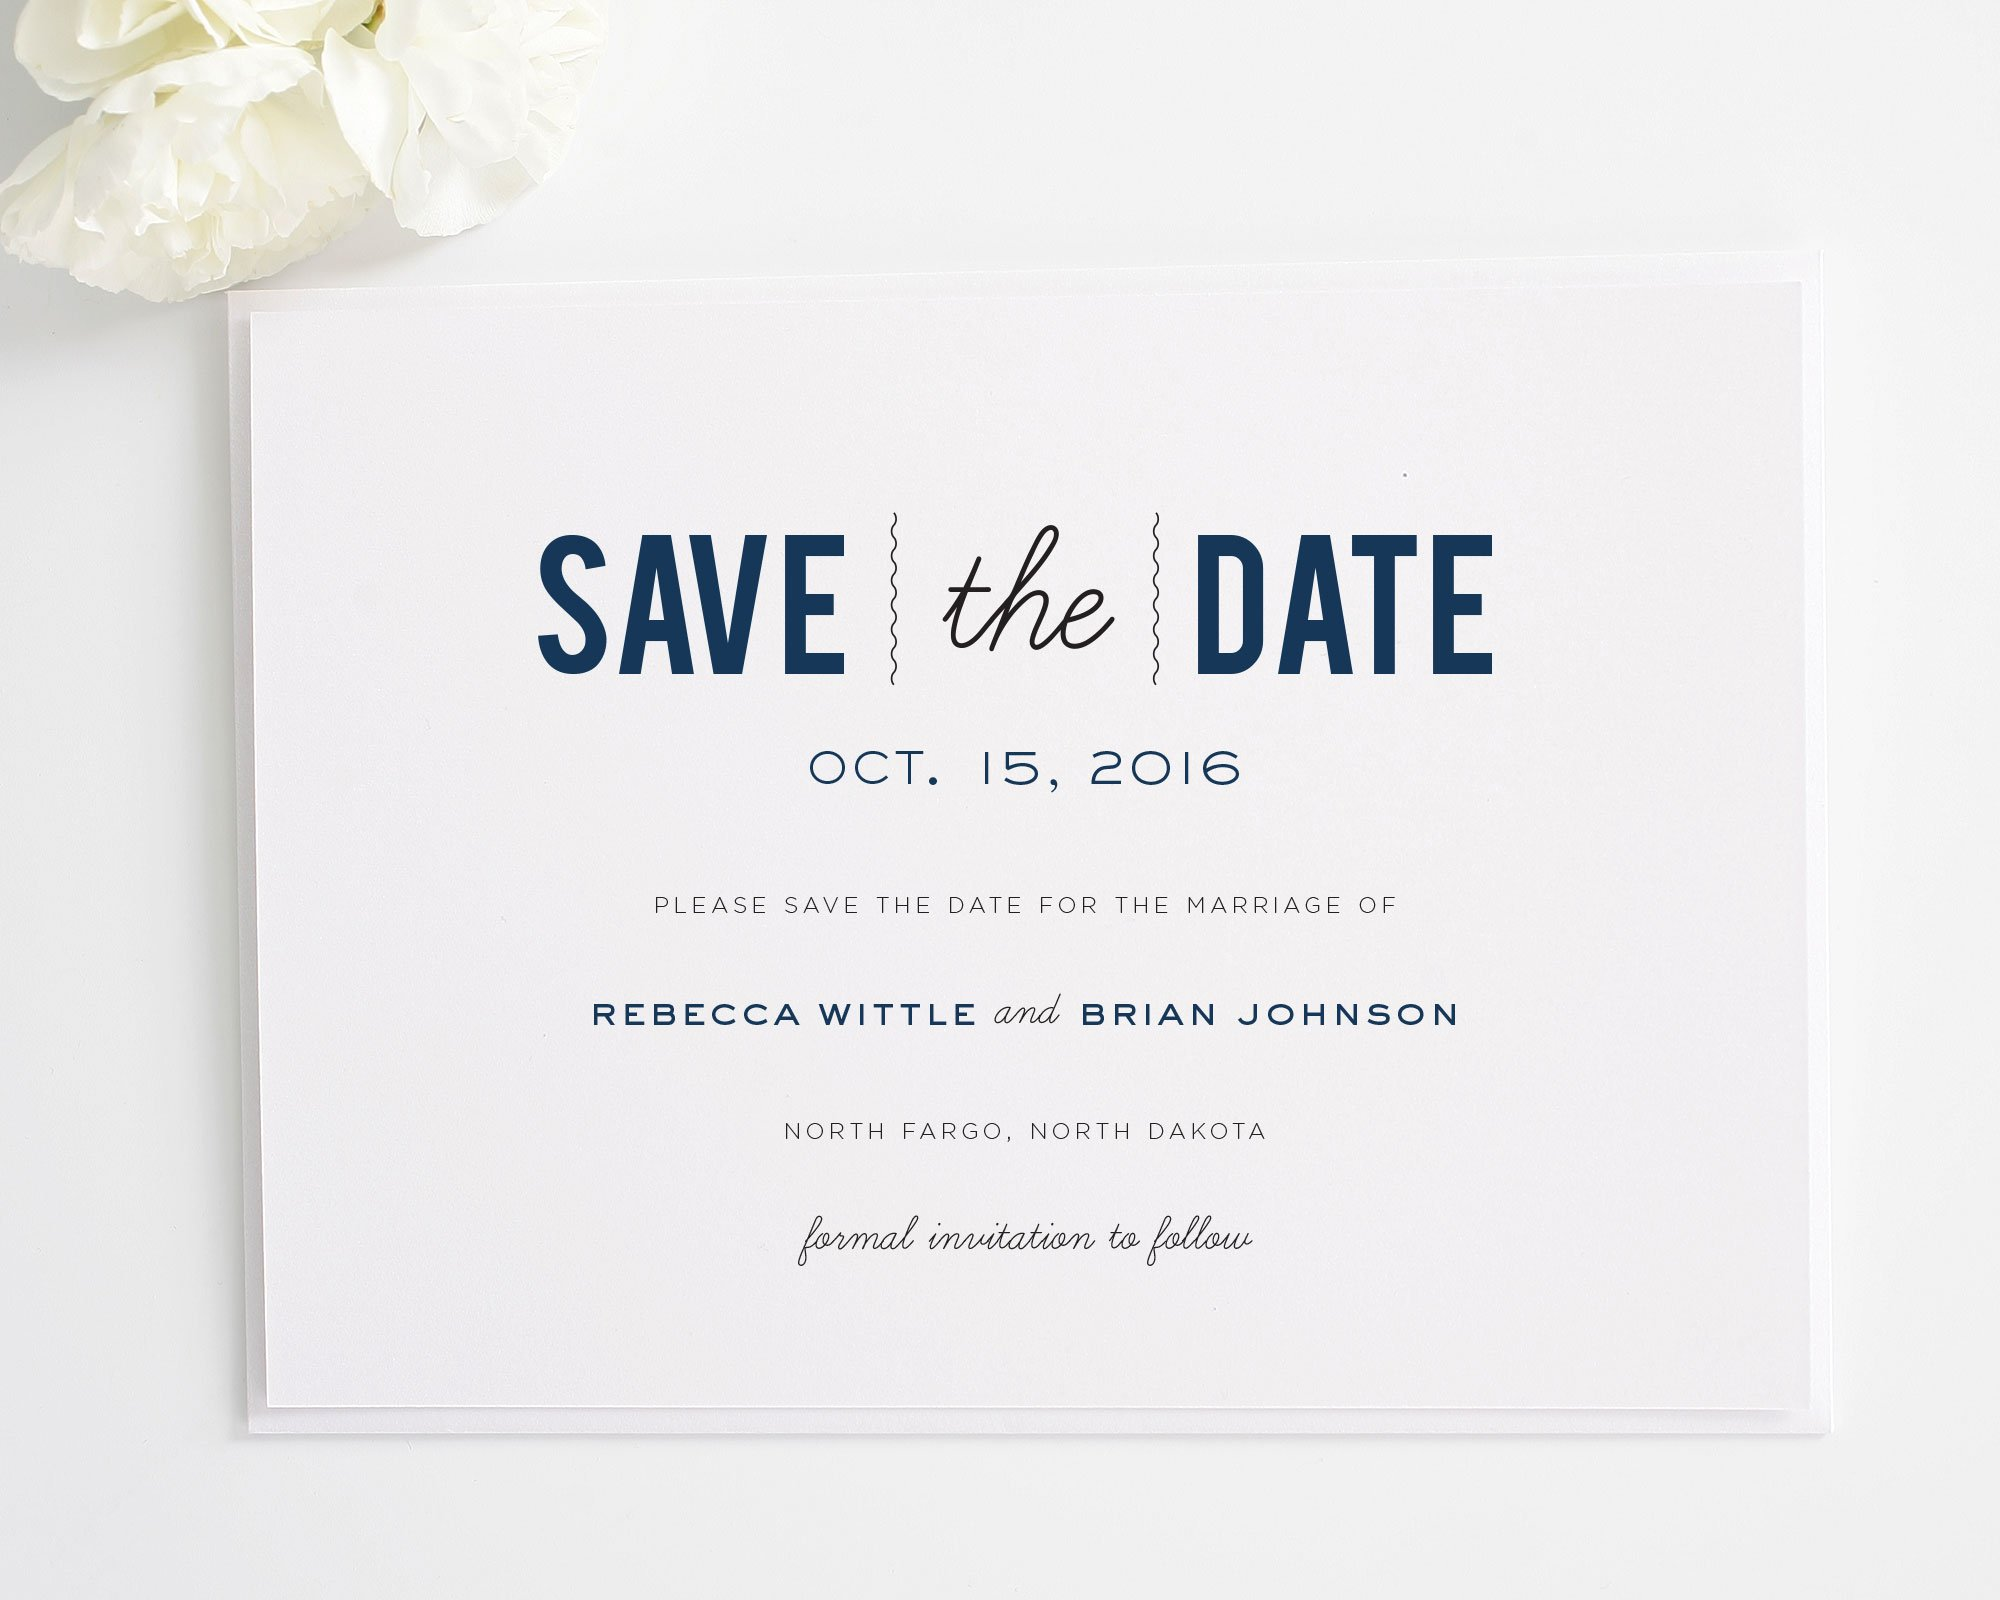 How To Design Wedding Invitation Cards Online - Collectionwedding.us